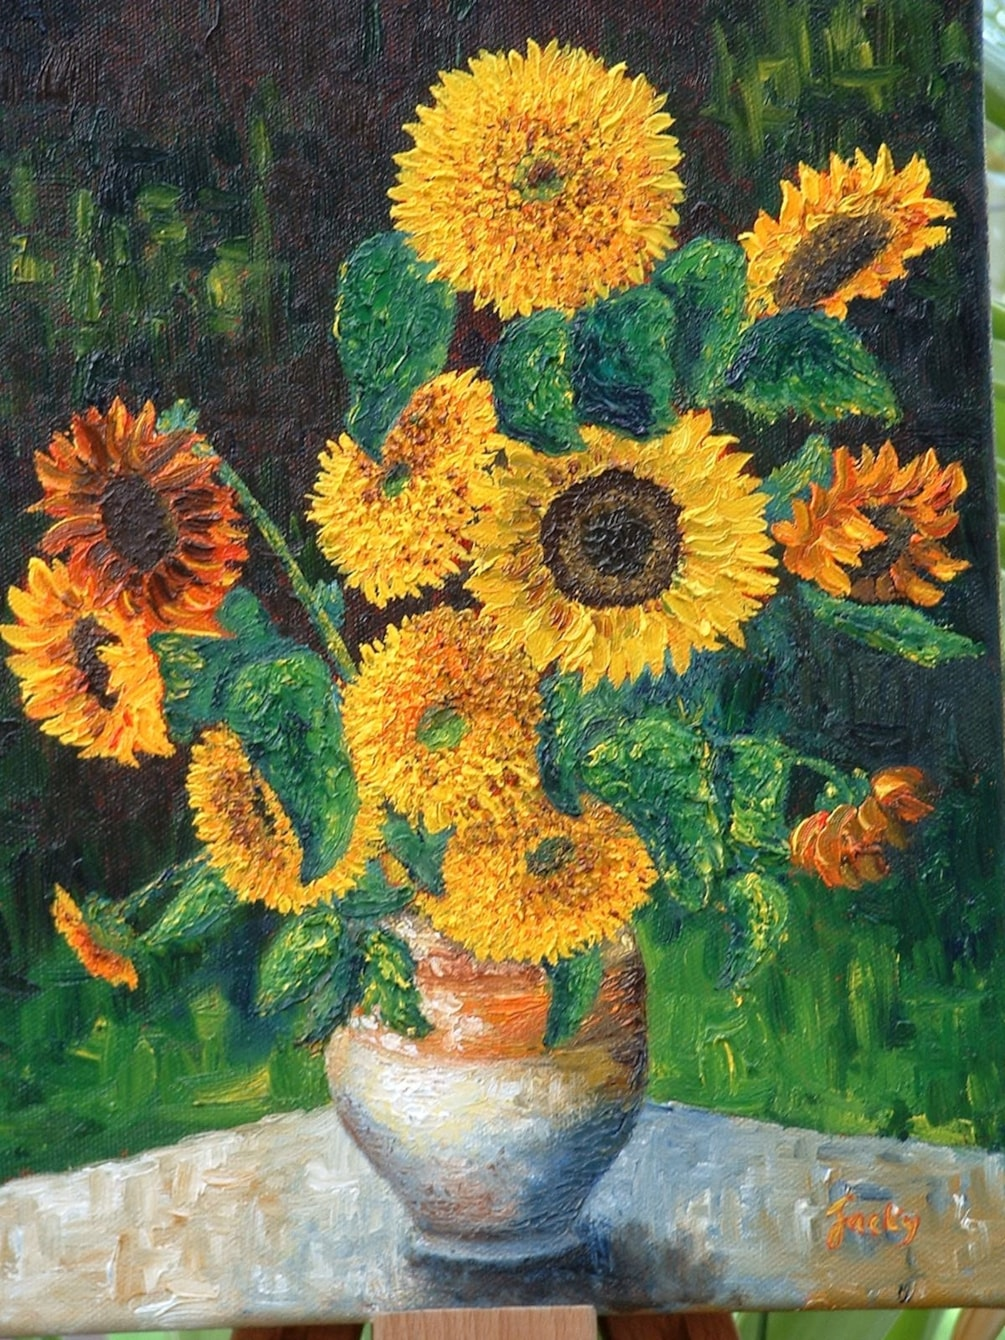 More sunflowers 2004